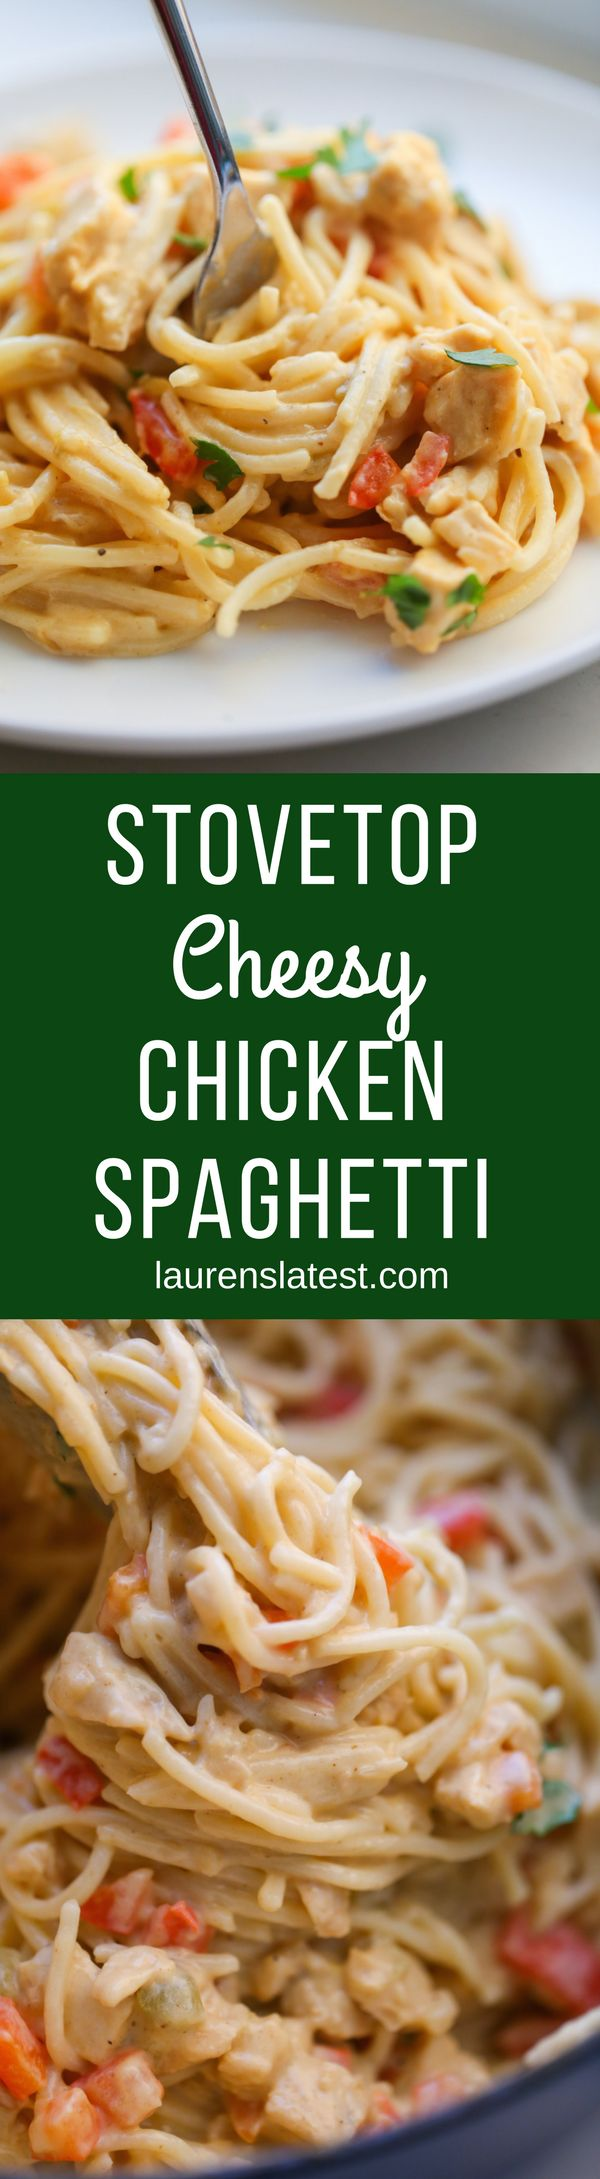 A stovetop version of the family favorite Cheesy Chicken Spaghetti that is quicker and just as tasty! Only one pot and a handful of ingredients needed for this delicious dinner.